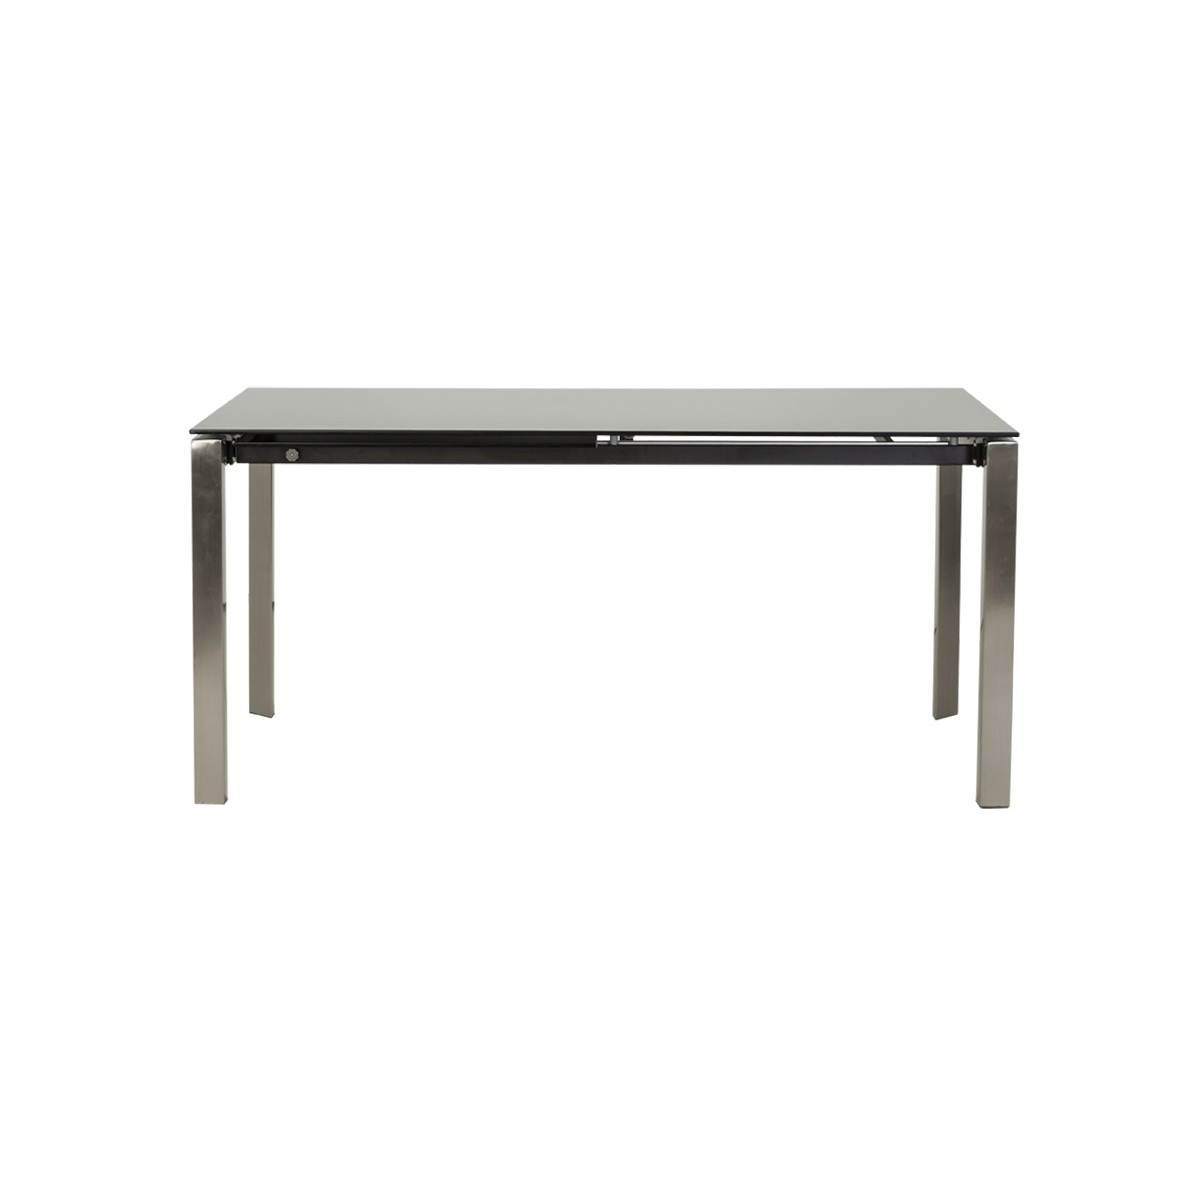 design table rectangular extension mona tempered glass and stainless steel black amp story 3485